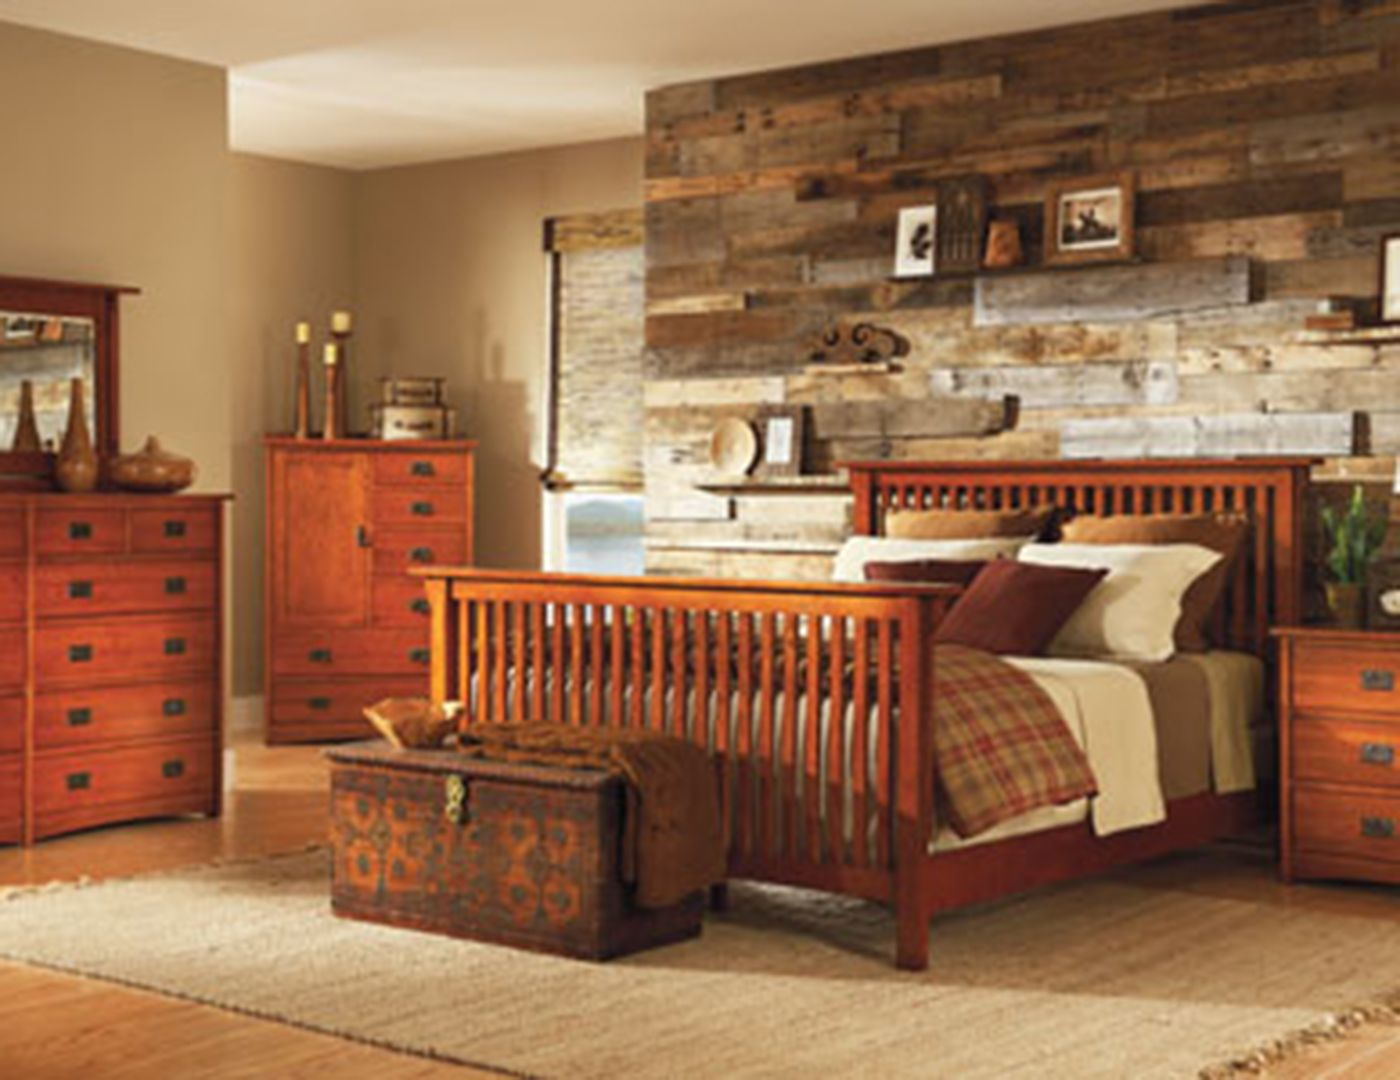 Witmer American Mission Queen Storage Bed Mission style